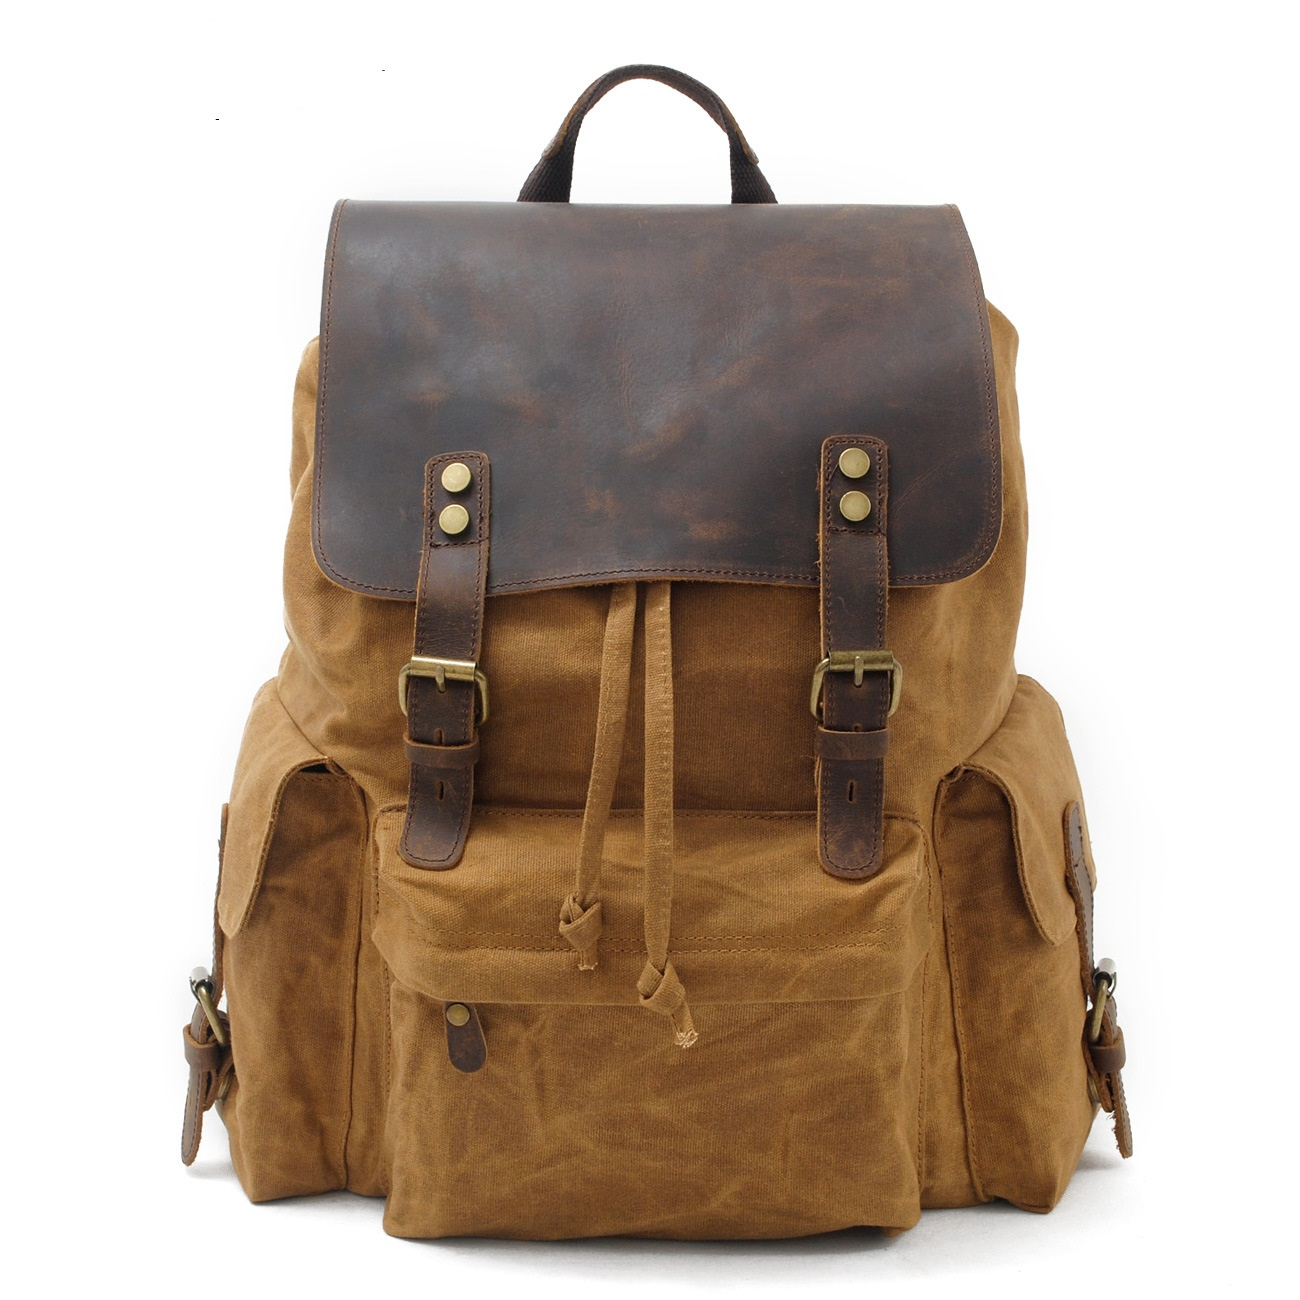 9151Europe and United States  Restore Ancient Backpack Cowhide Leather High-capacity Waterproof Printing Canvas Backpack